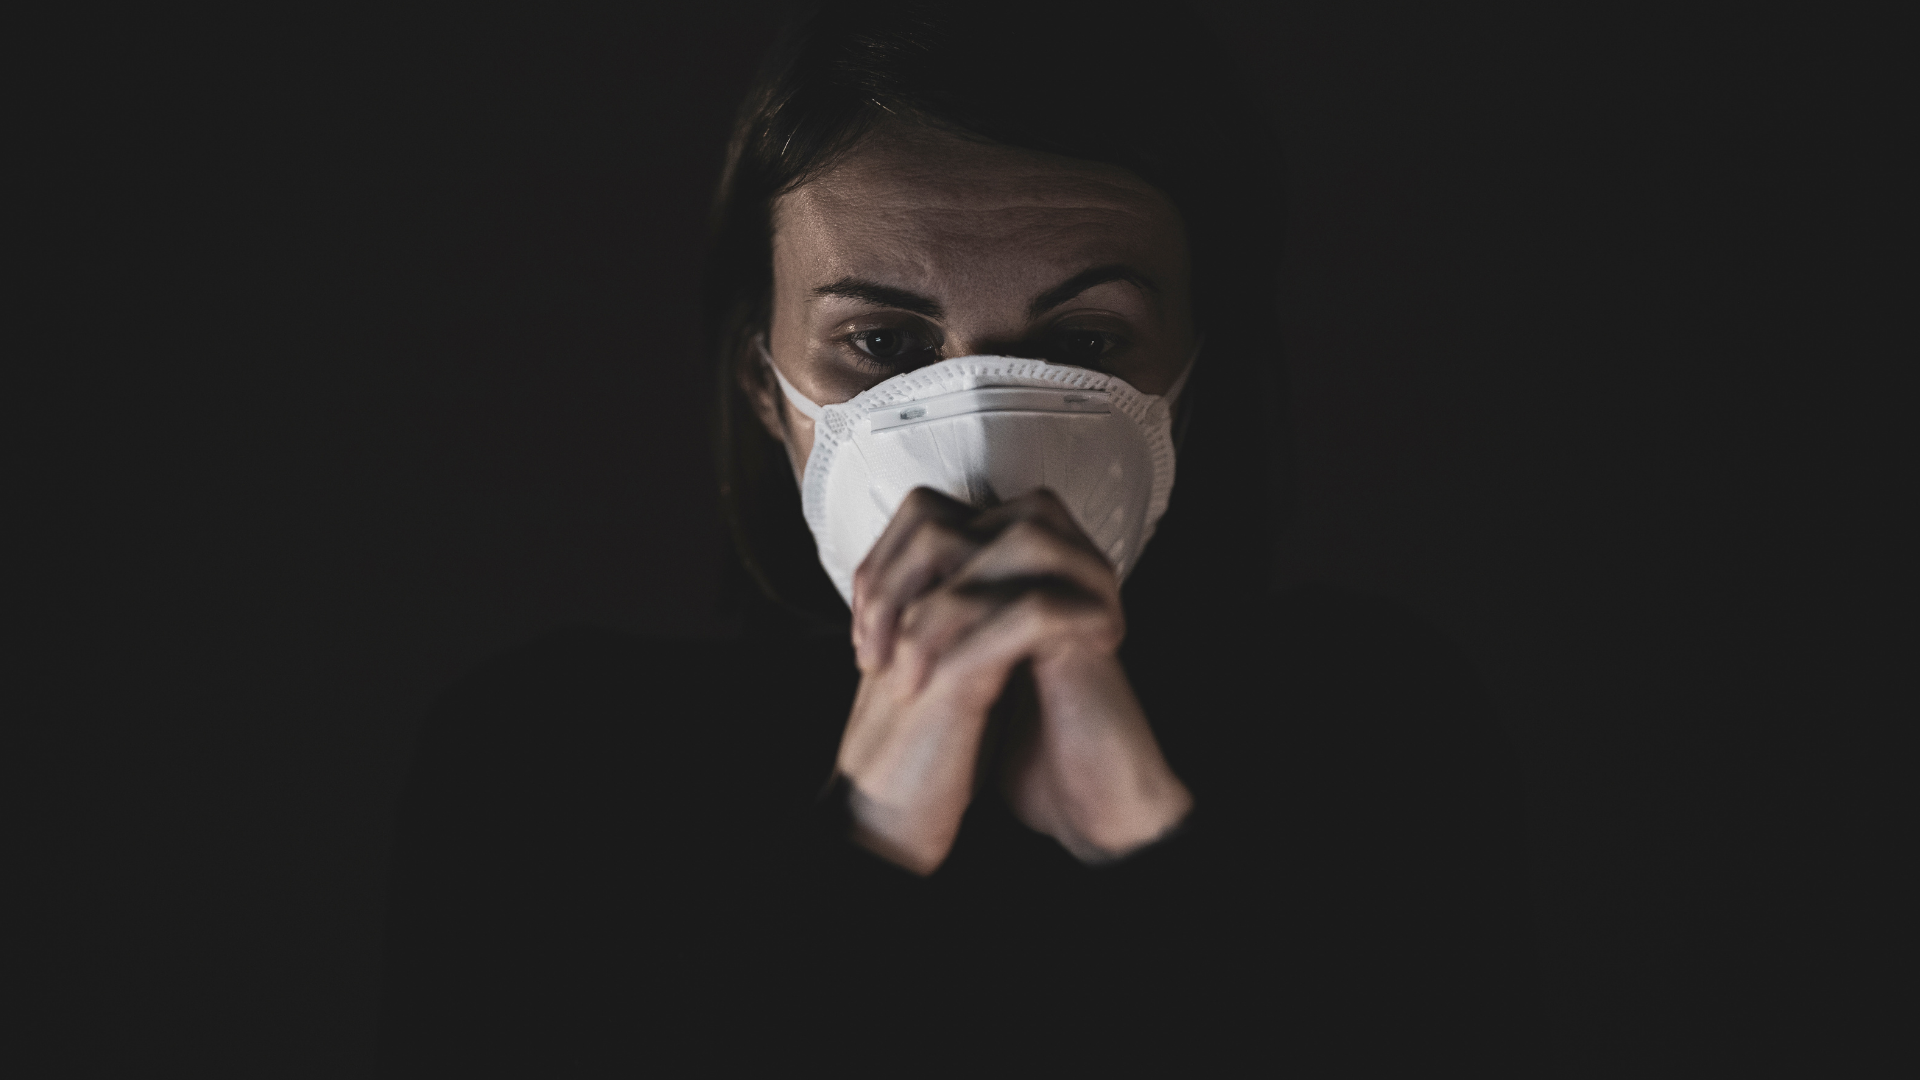 woman in mask sits in the dark with a worried look on her face. mental health